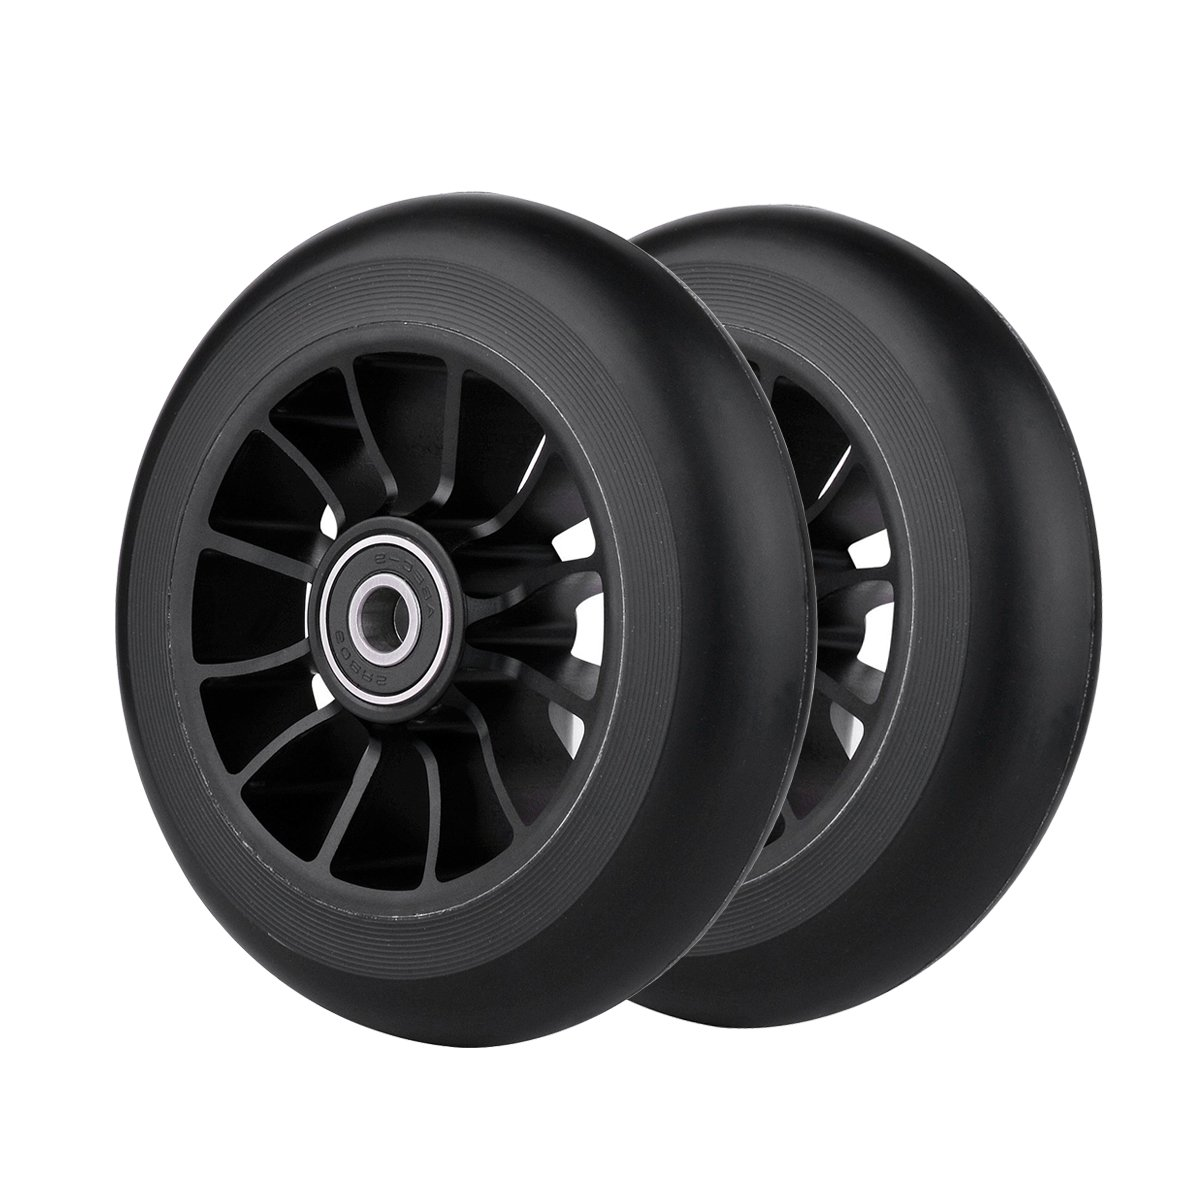 Z-FIRST 2Pcs 100 mm Pro Stunt Scooter Wheels with Abec 9 Bearings for MGP/Razor/Lucky/Envy/Vokul Pro Scooters Replacement Wheels(Black)